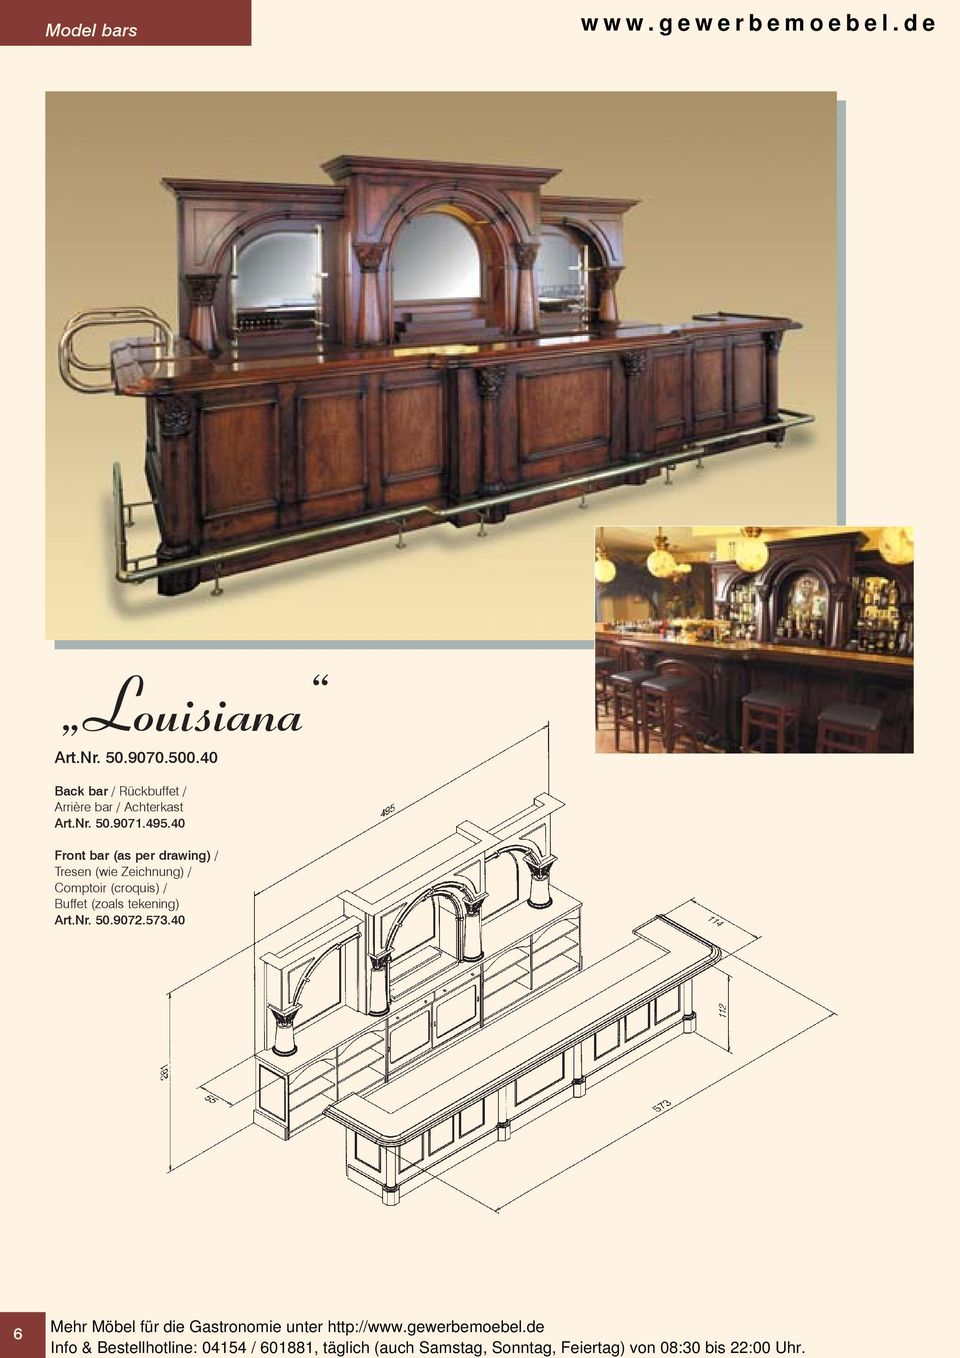 40 Front bar (as per drawing) / Tresen (wie